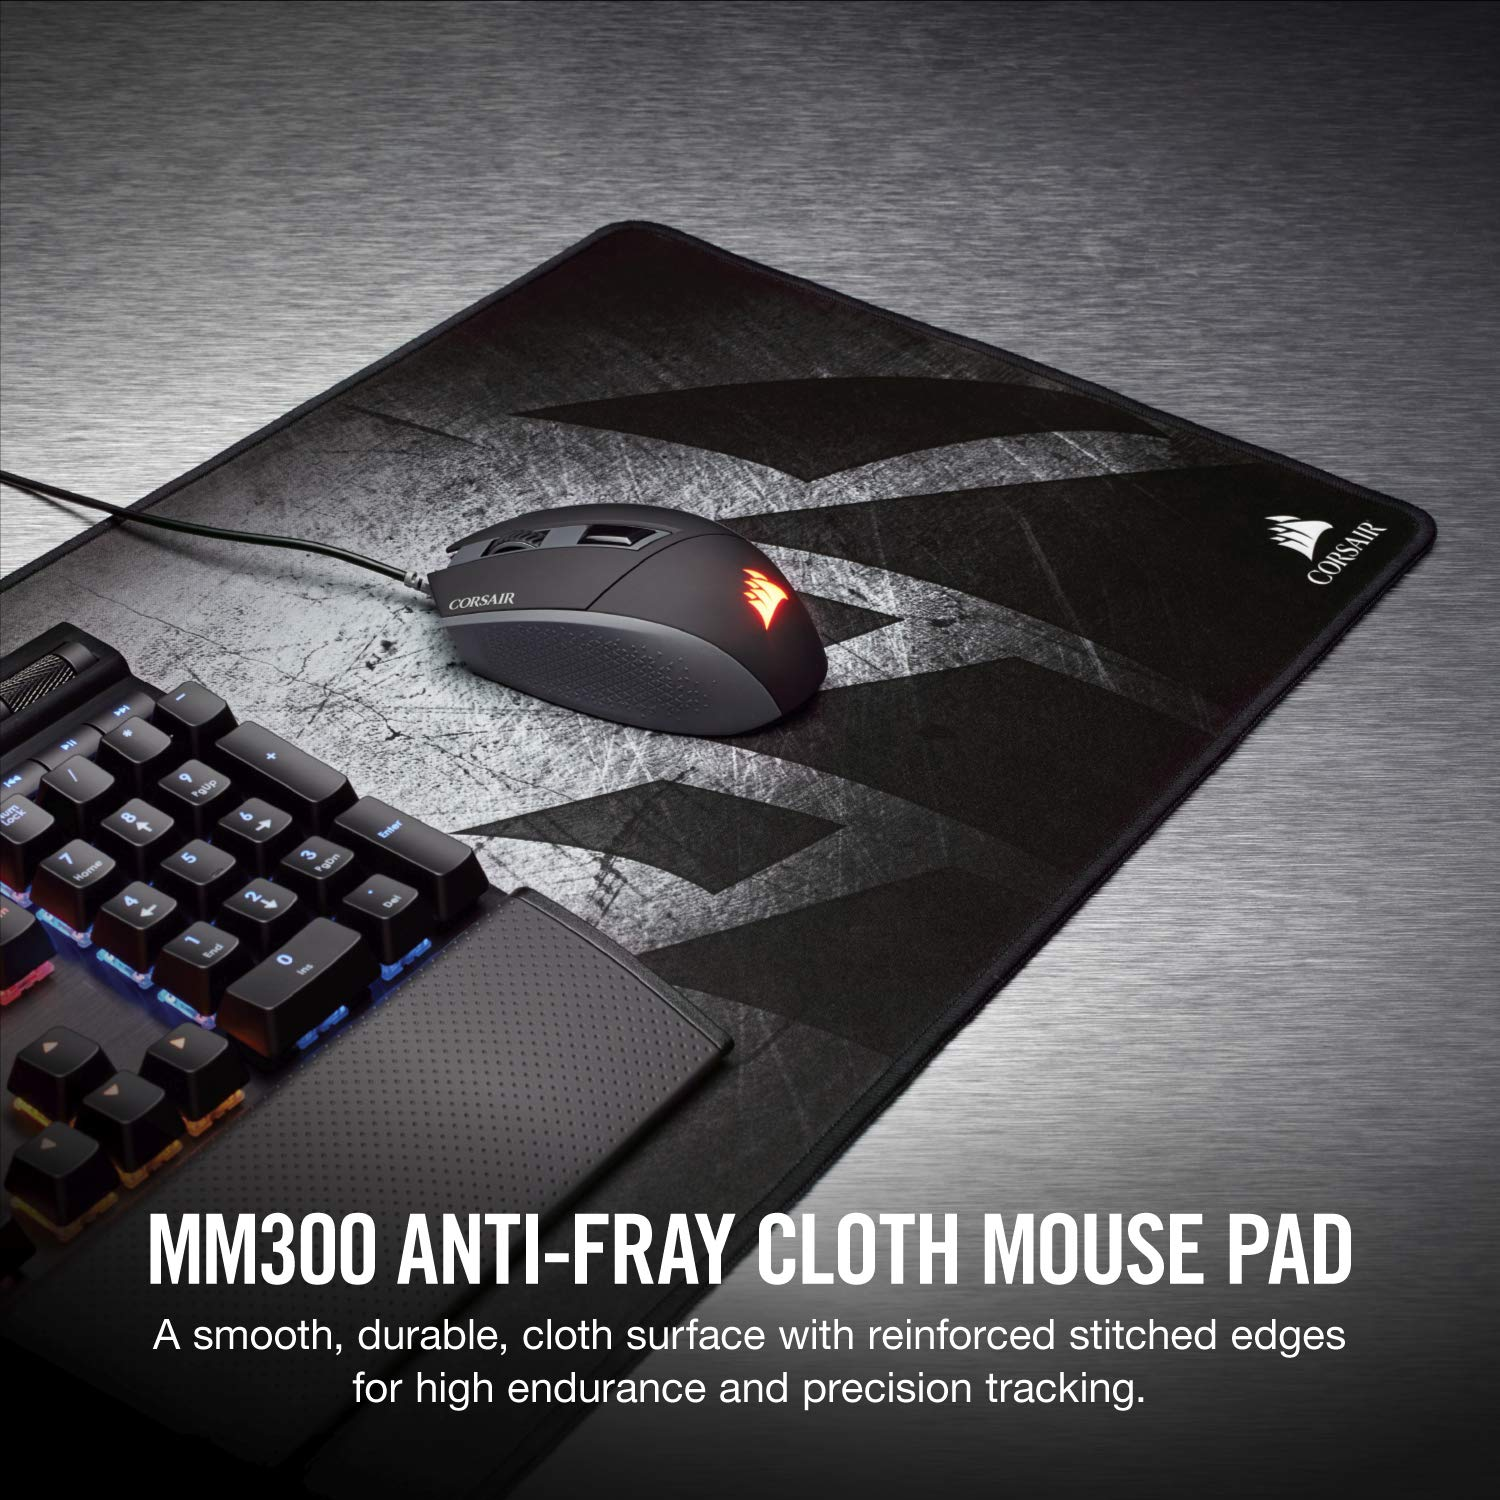 9ffe2d7eaa3 Corsair Gaming MM300 Extended Anti-Fray Cloth Gaming Mouse Mat - Black:  Amazon.co.uk: Computers & Accessories